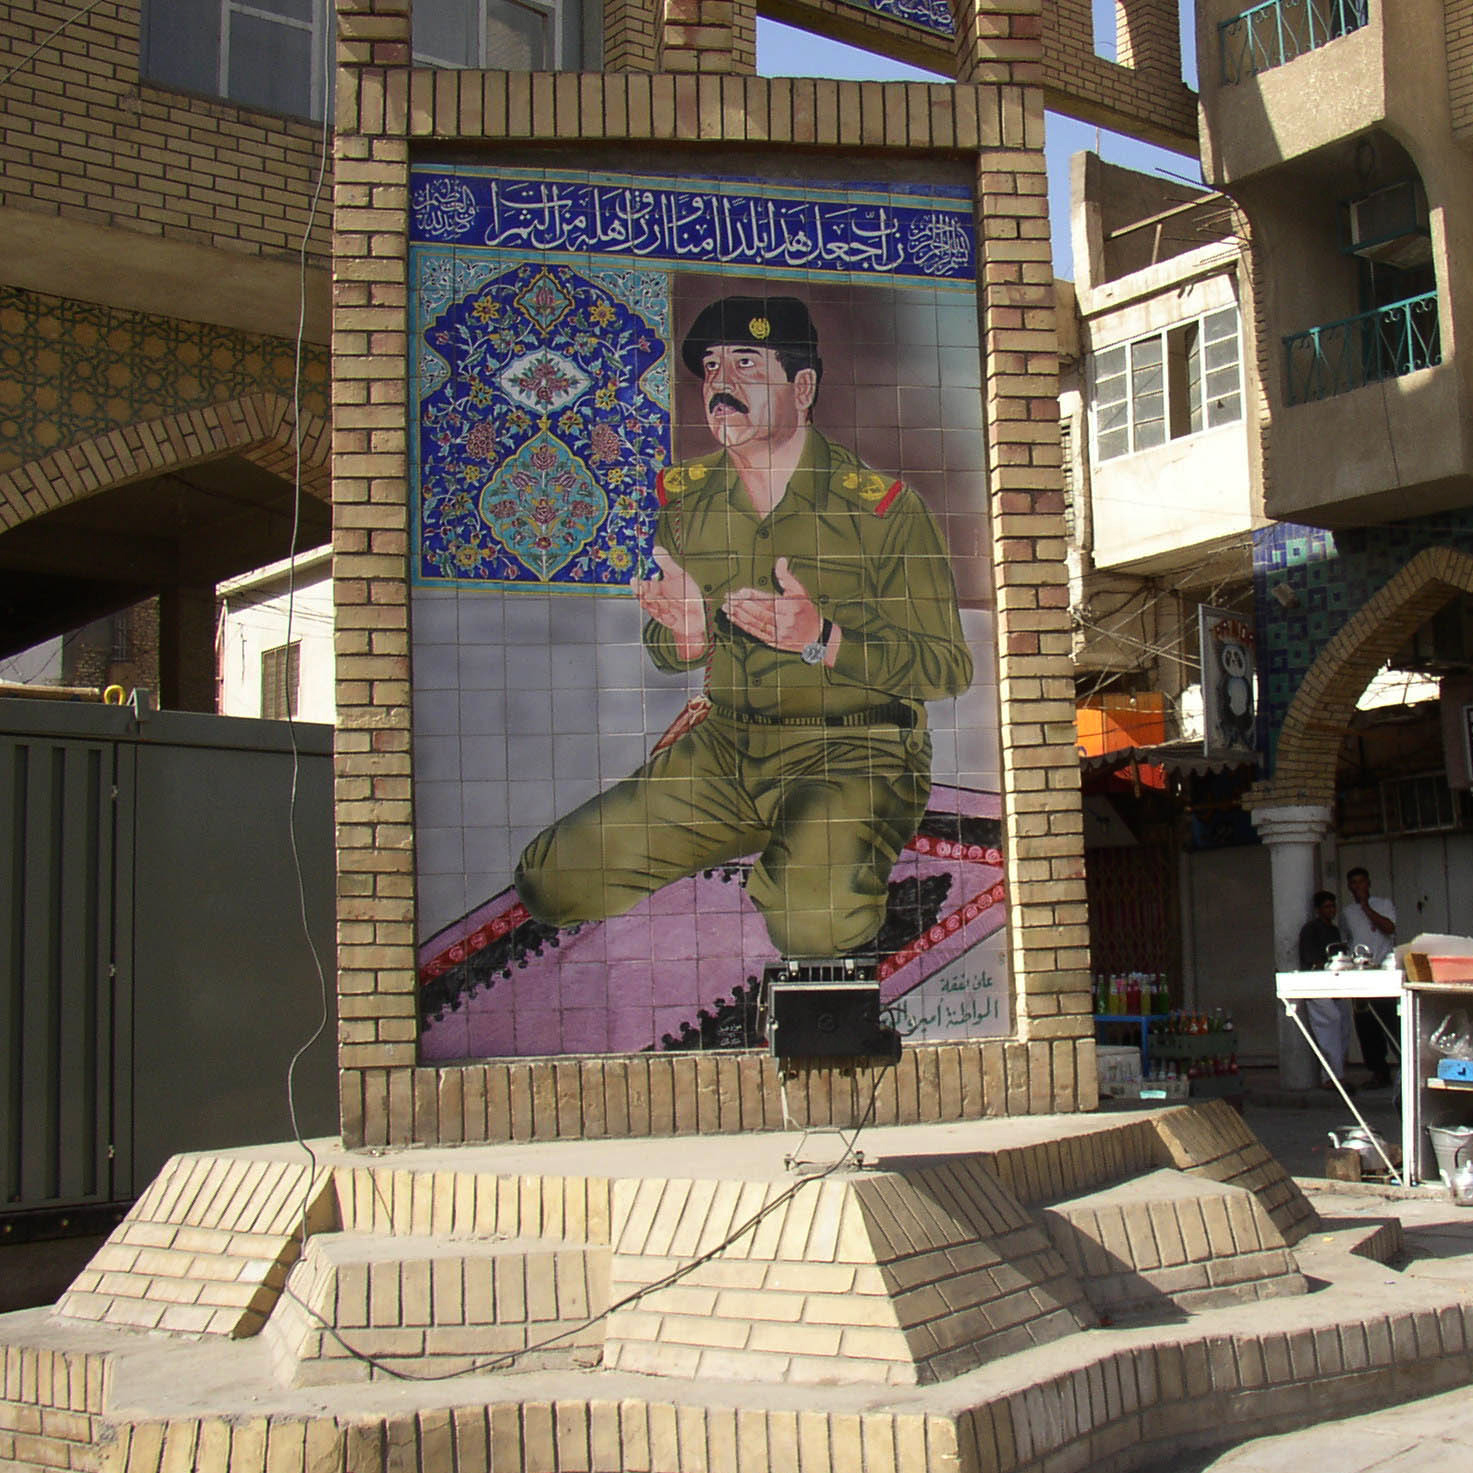 A now-destroyed tile mural showing Saddam Hussein, a Sunni who treated Shi'ites brutally and was despised by Karbala's residents, praying in a military uniform, in the holy Shi'ite city of Karbala.